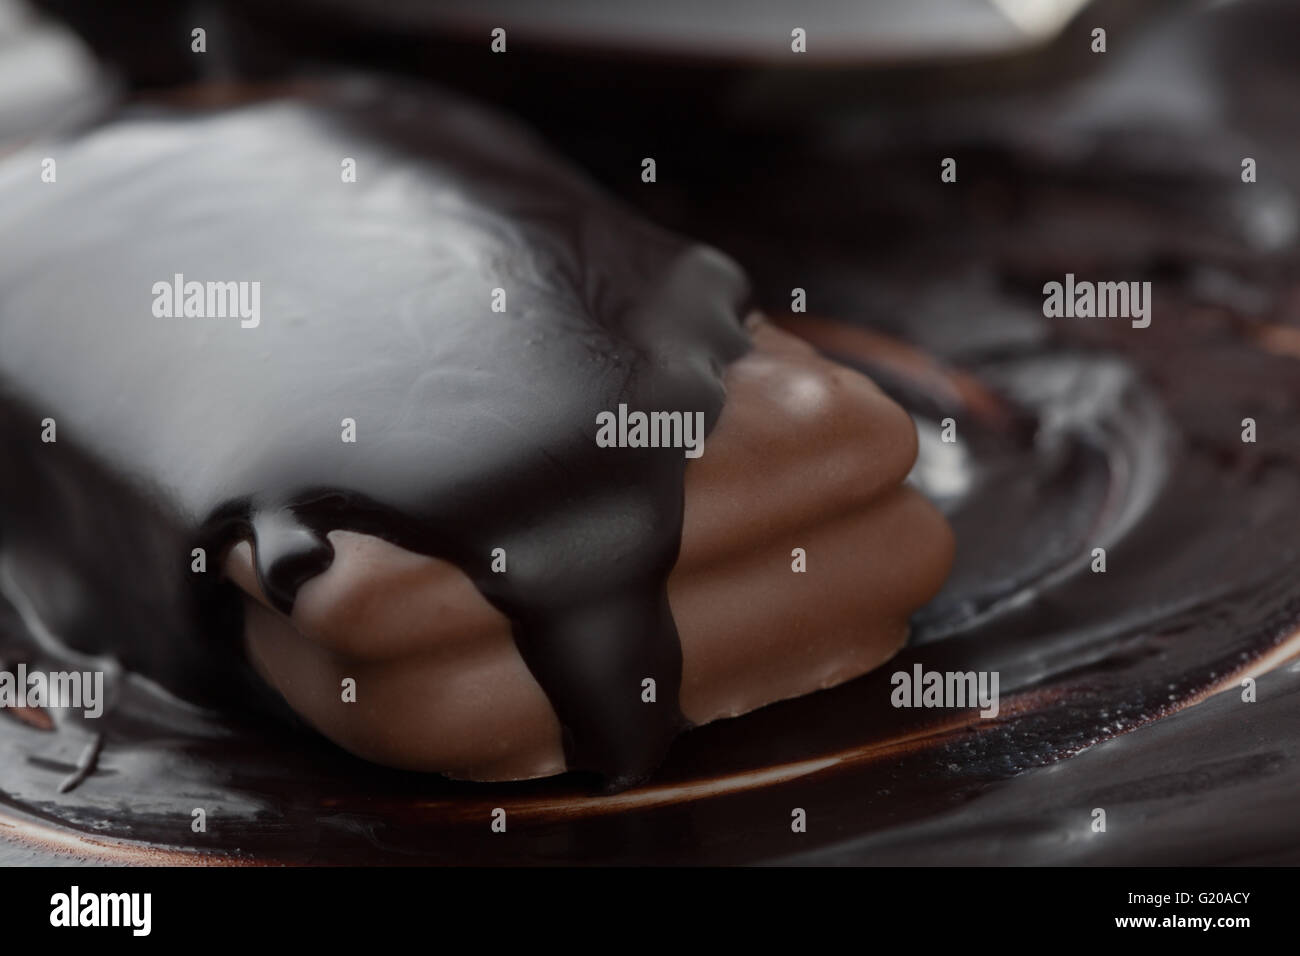 Extreme closeup of cookie covered in dark melted chocolate - Stock Image